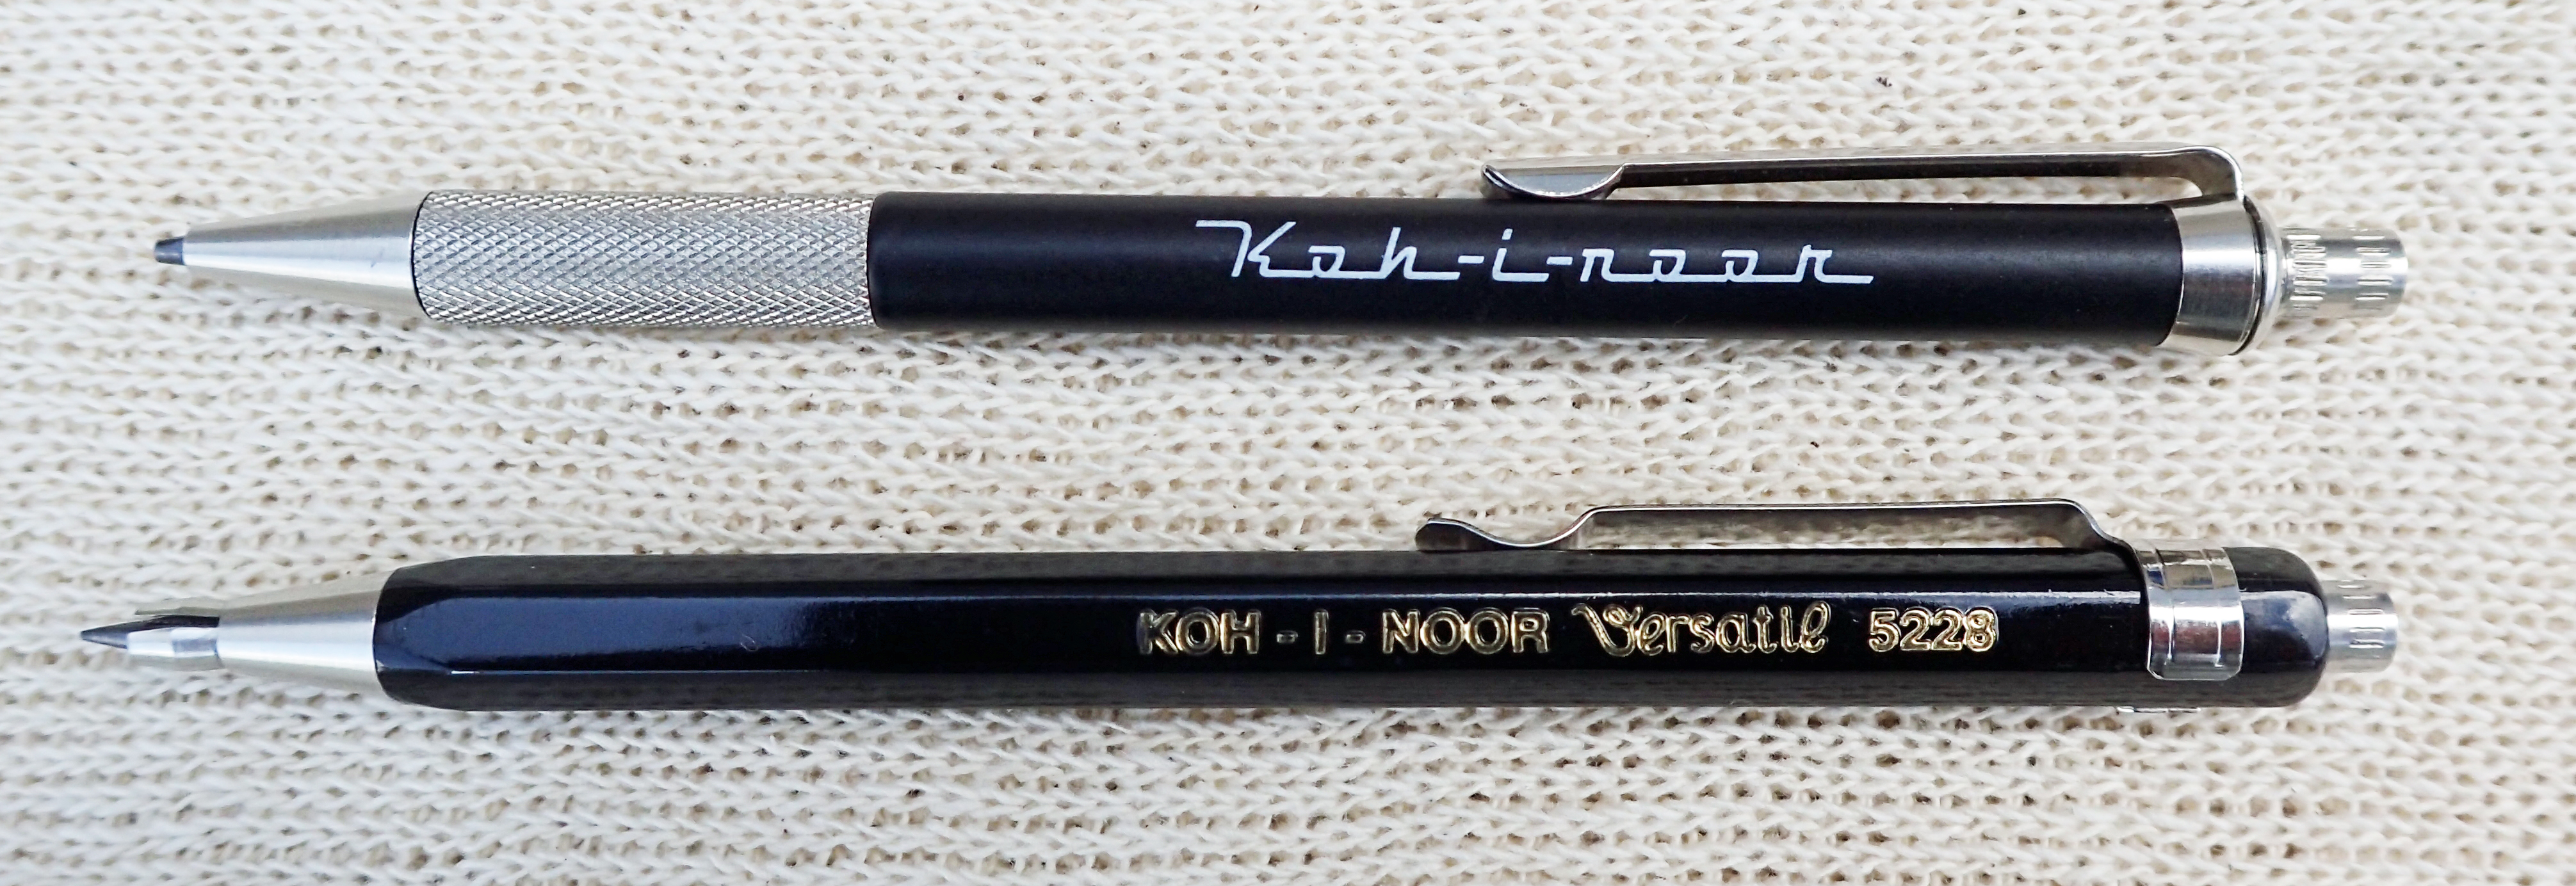 KOH-I-NOOR Automatic 5608 Mechanical pencil for notebook with metal...